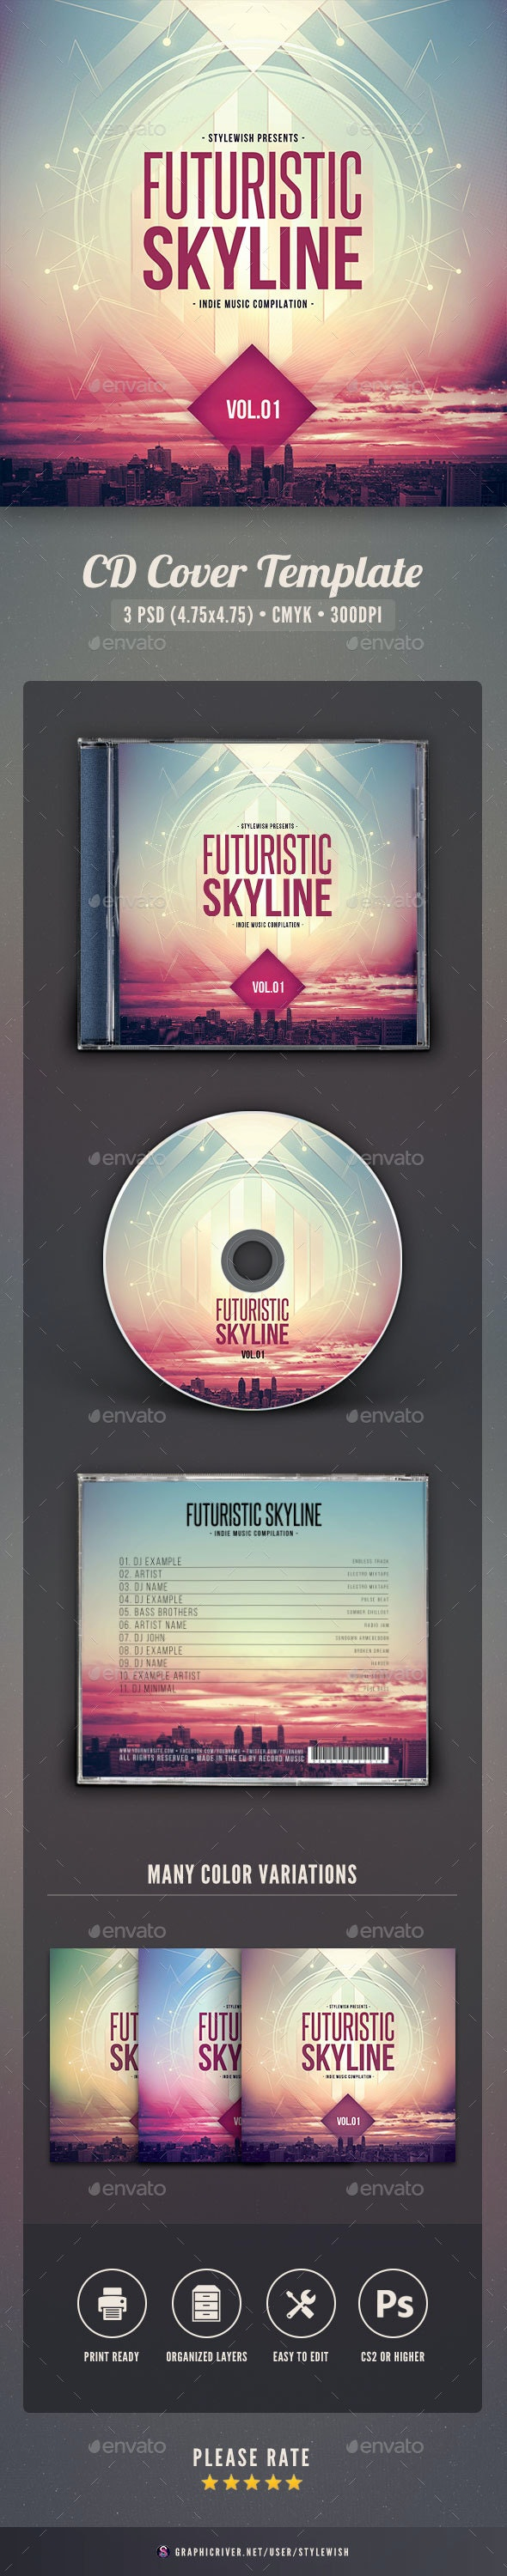 Futuristic Skyline CD Cover Artwork - CD & DVD Artwork Print Templates